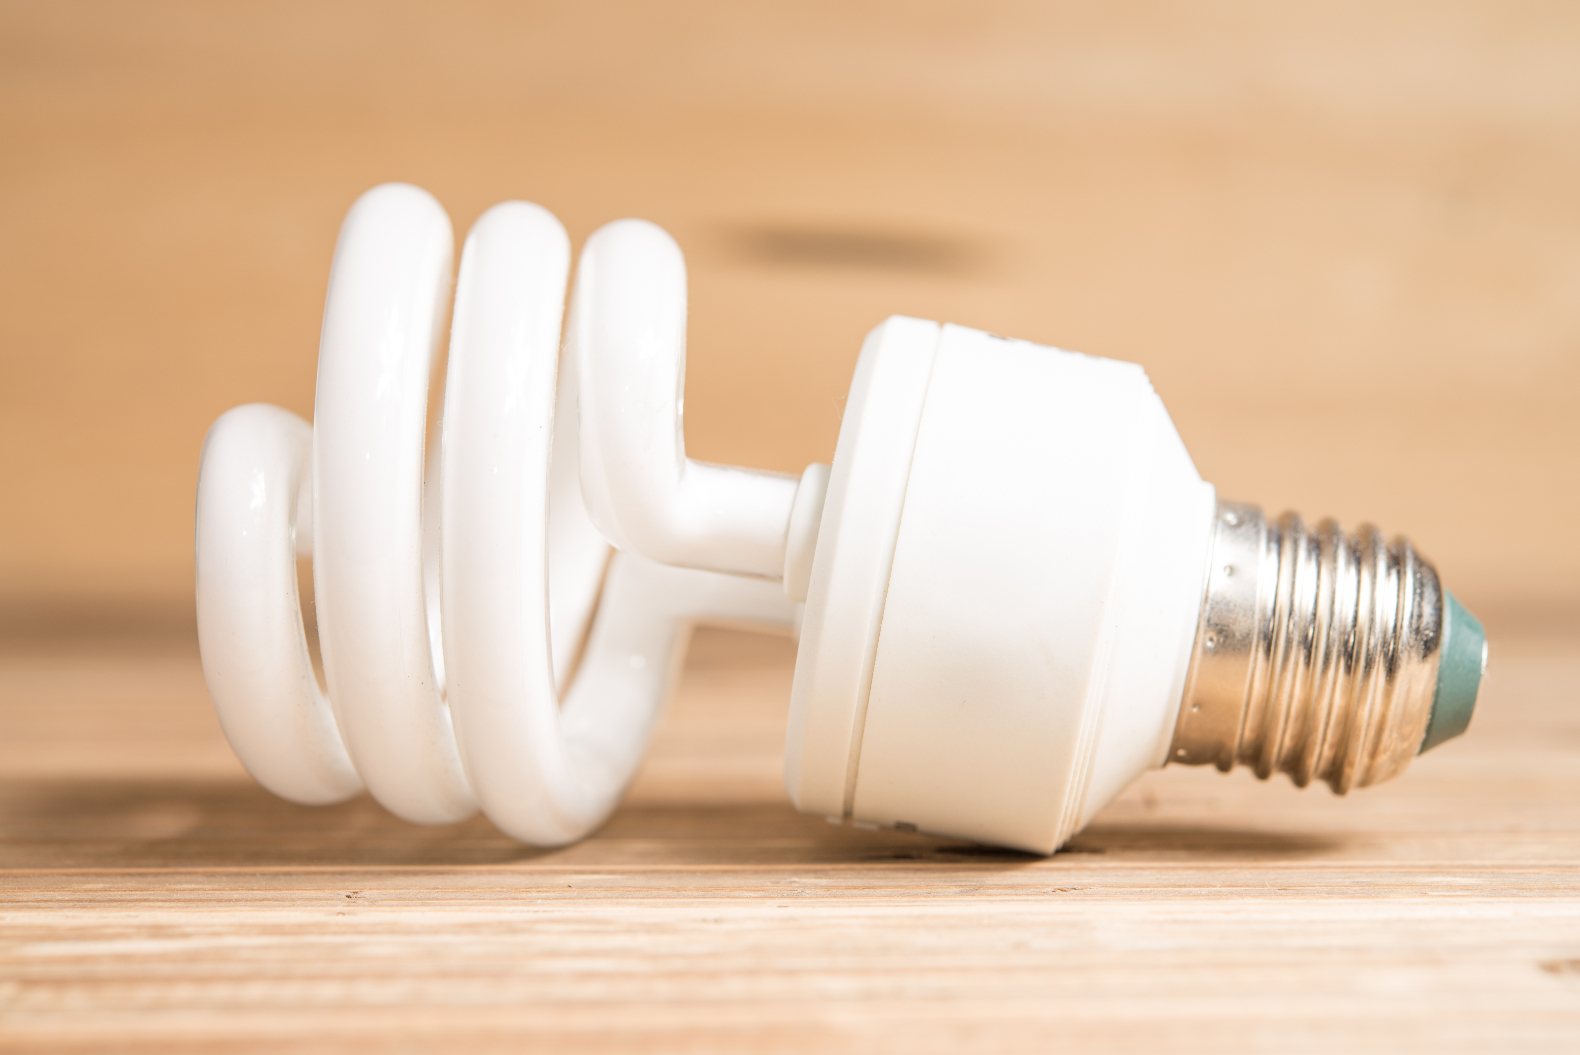 Ge Phase Out Marks The Beginning Of The End For Cfl Bulbs Inhabitat Green Design Innovation